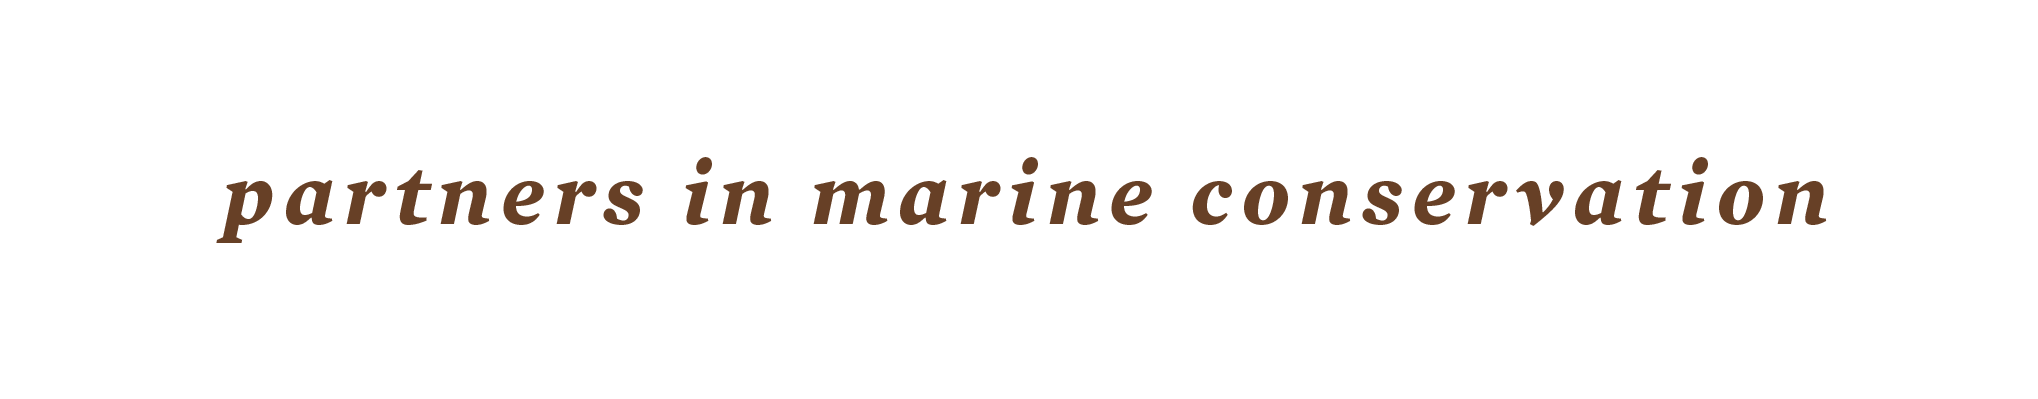 Partners in marine conservation